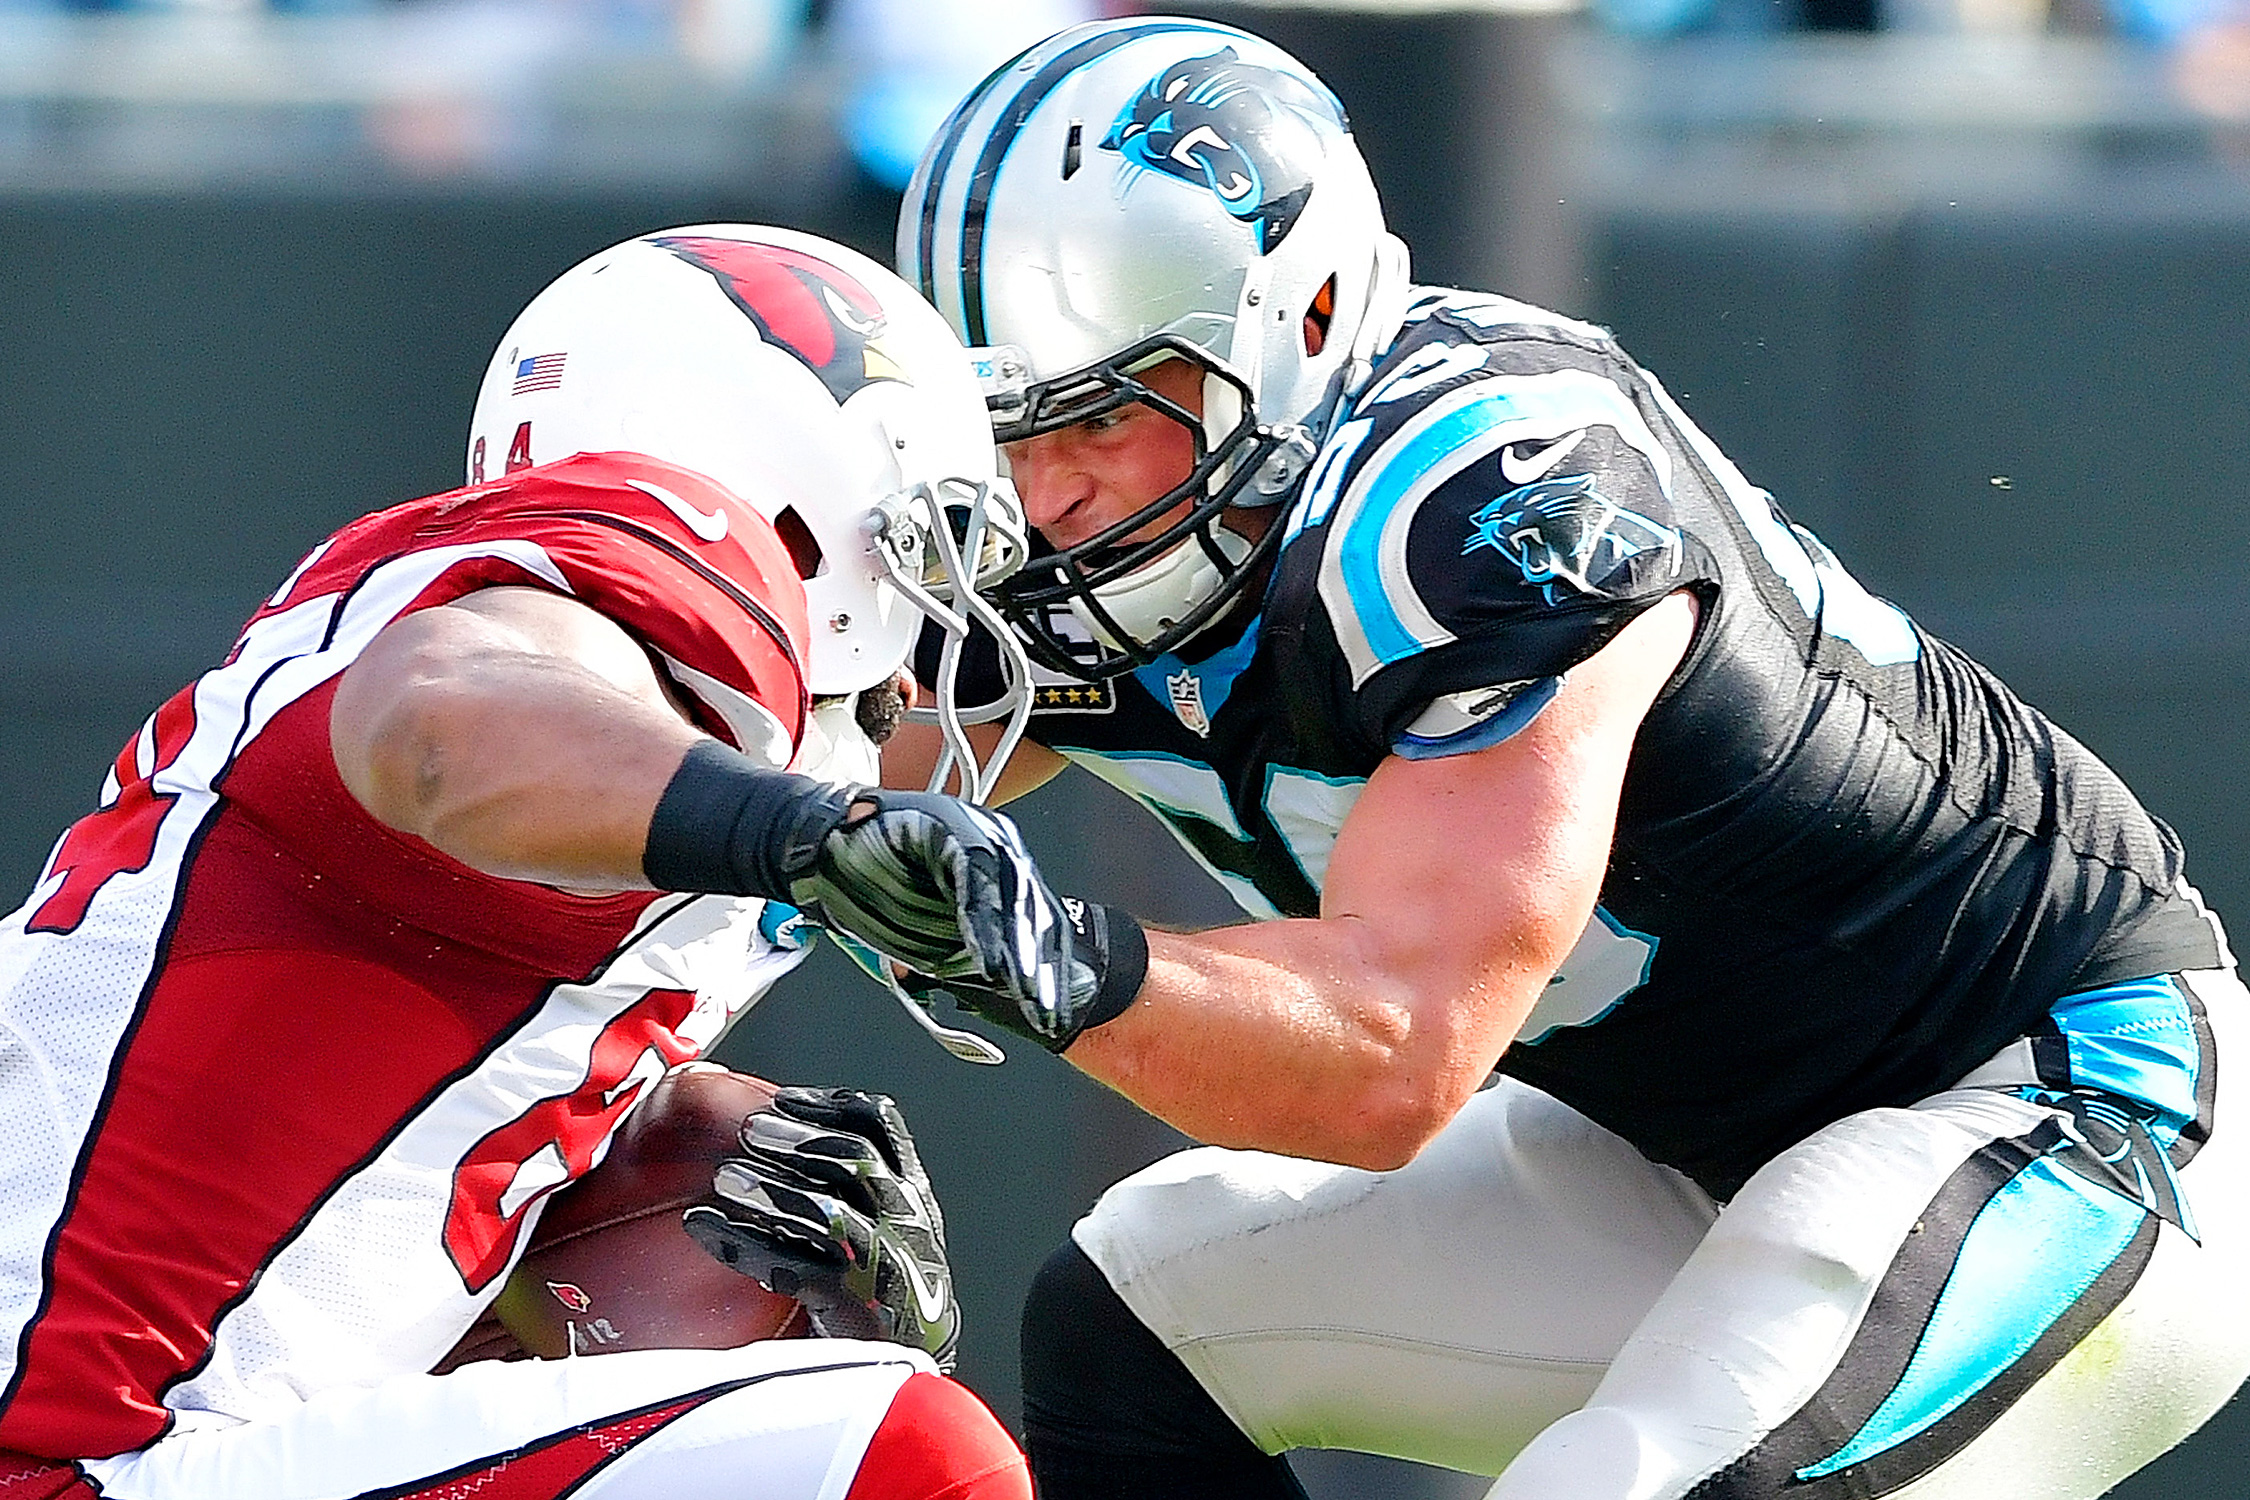 Things look different for the struggling Panthers this year, but Kuechly has stayed the same: He's still a dominant force in the Carolina defense. He's second in the league with 74 combined tackles (52 solo).